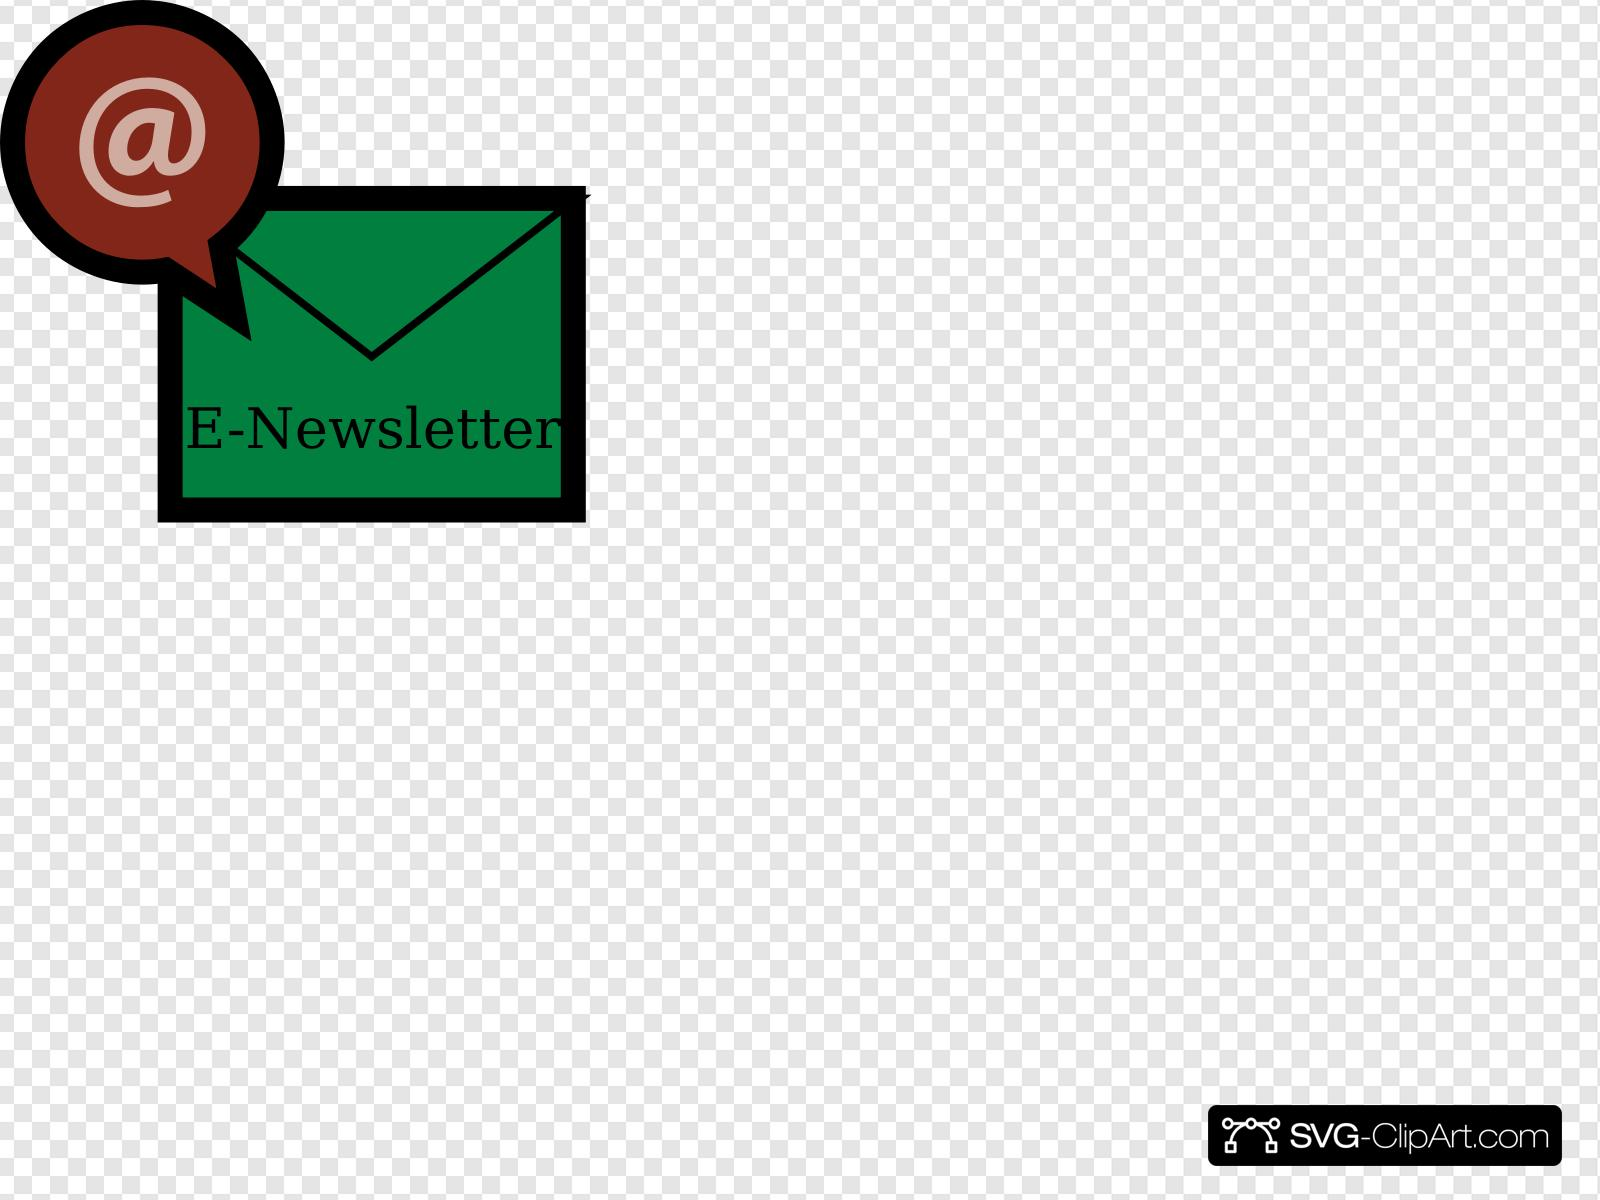 Newsletter Clip art, Icon and SVG.